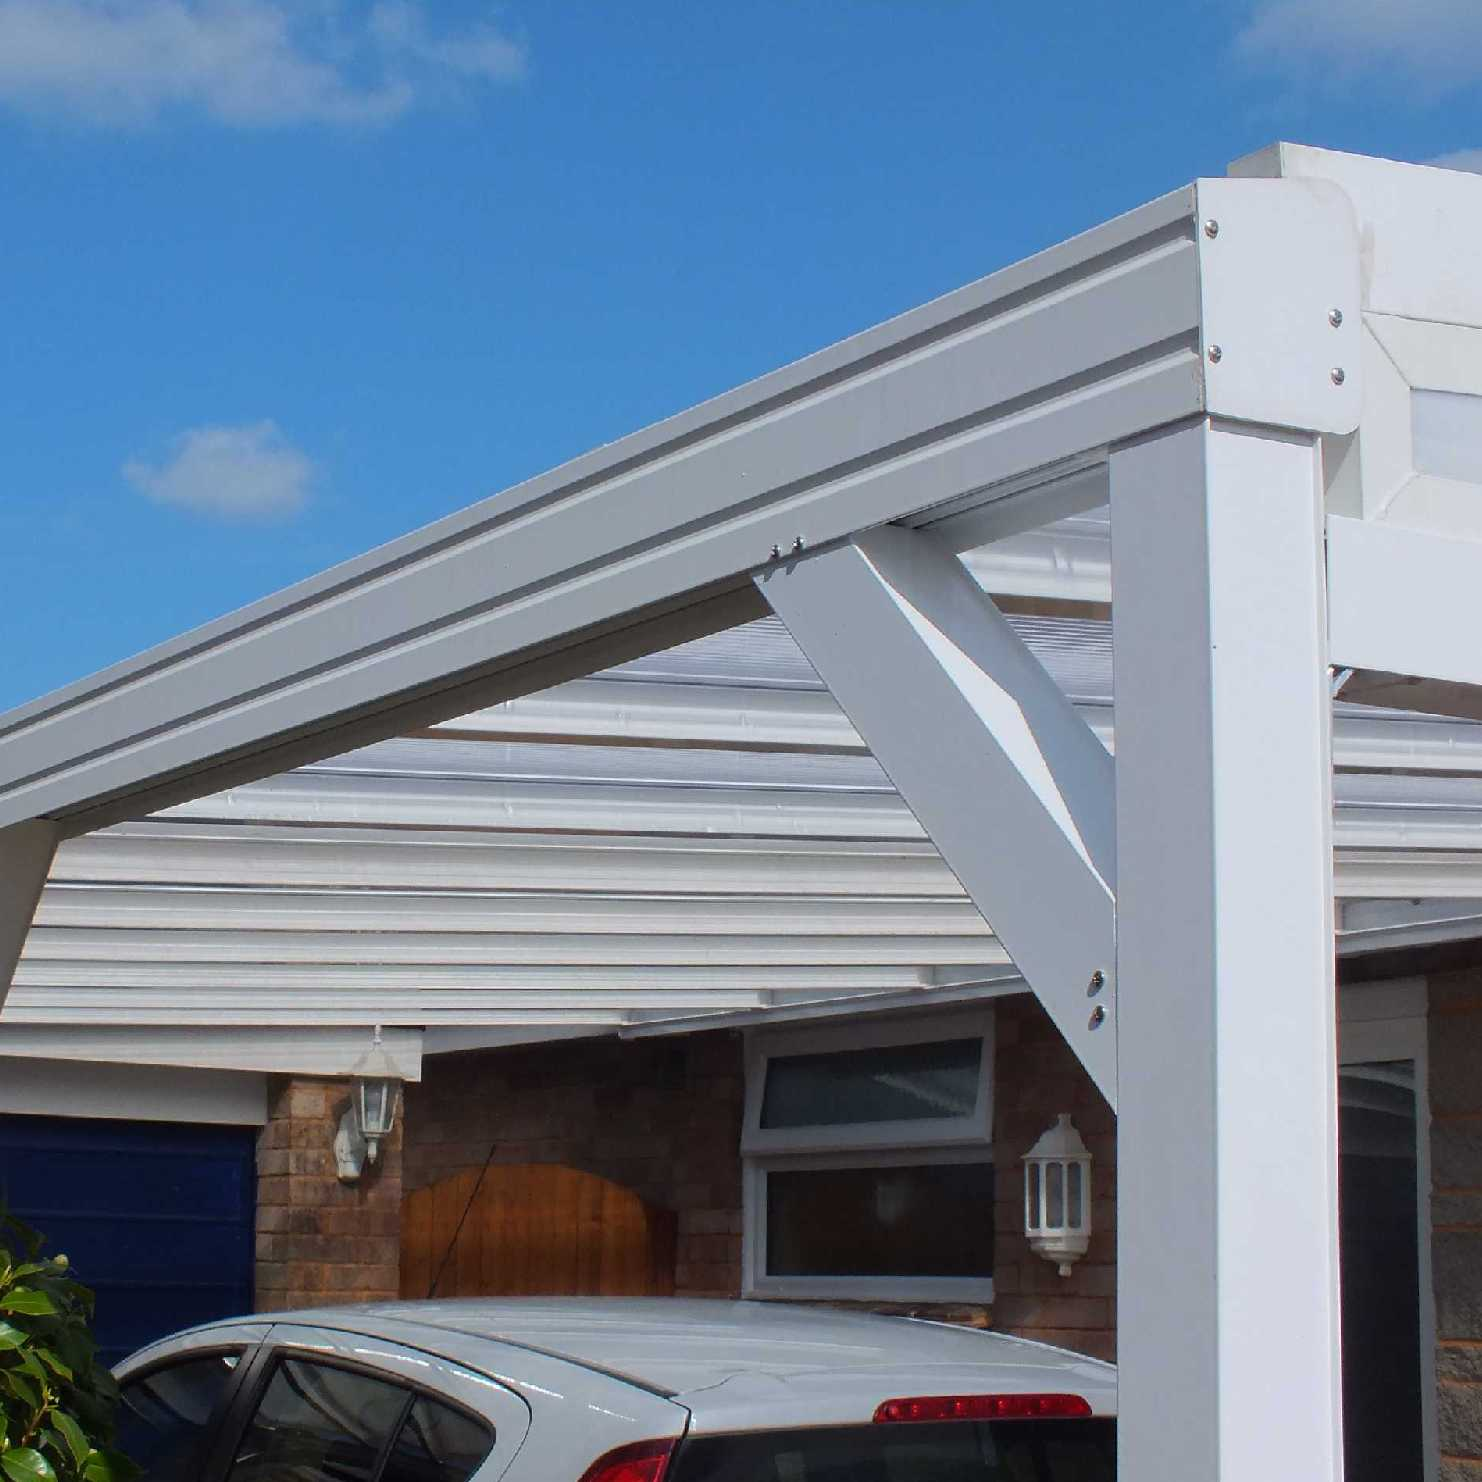 Great deals on Omega Smart Lean-To Canopy with 16mm Polycarbonate Glazing - 7.8m (W) x 3.5m (P), (4) Supporting Posts